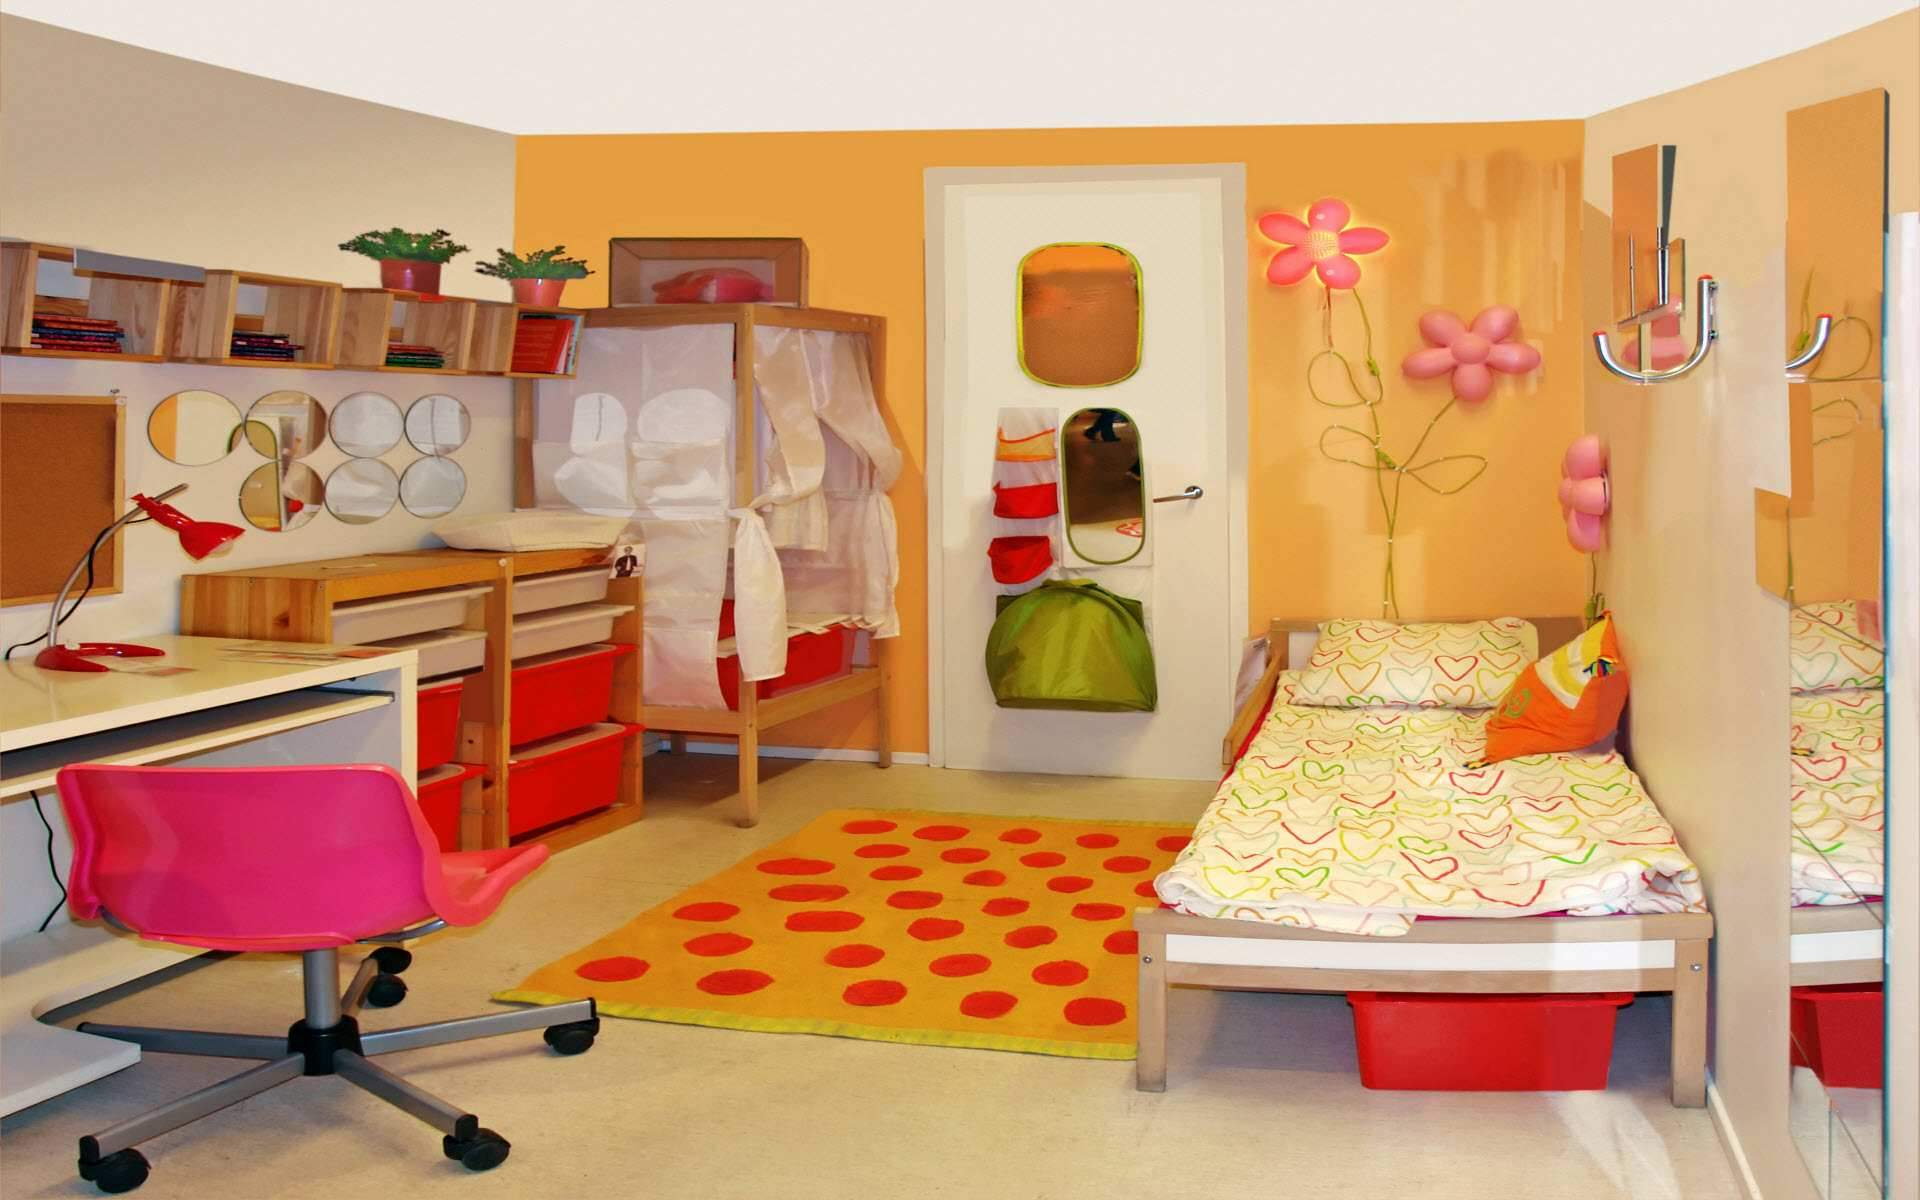 Unique small kids room decorating ideas image 012 small for Interior designs for kids